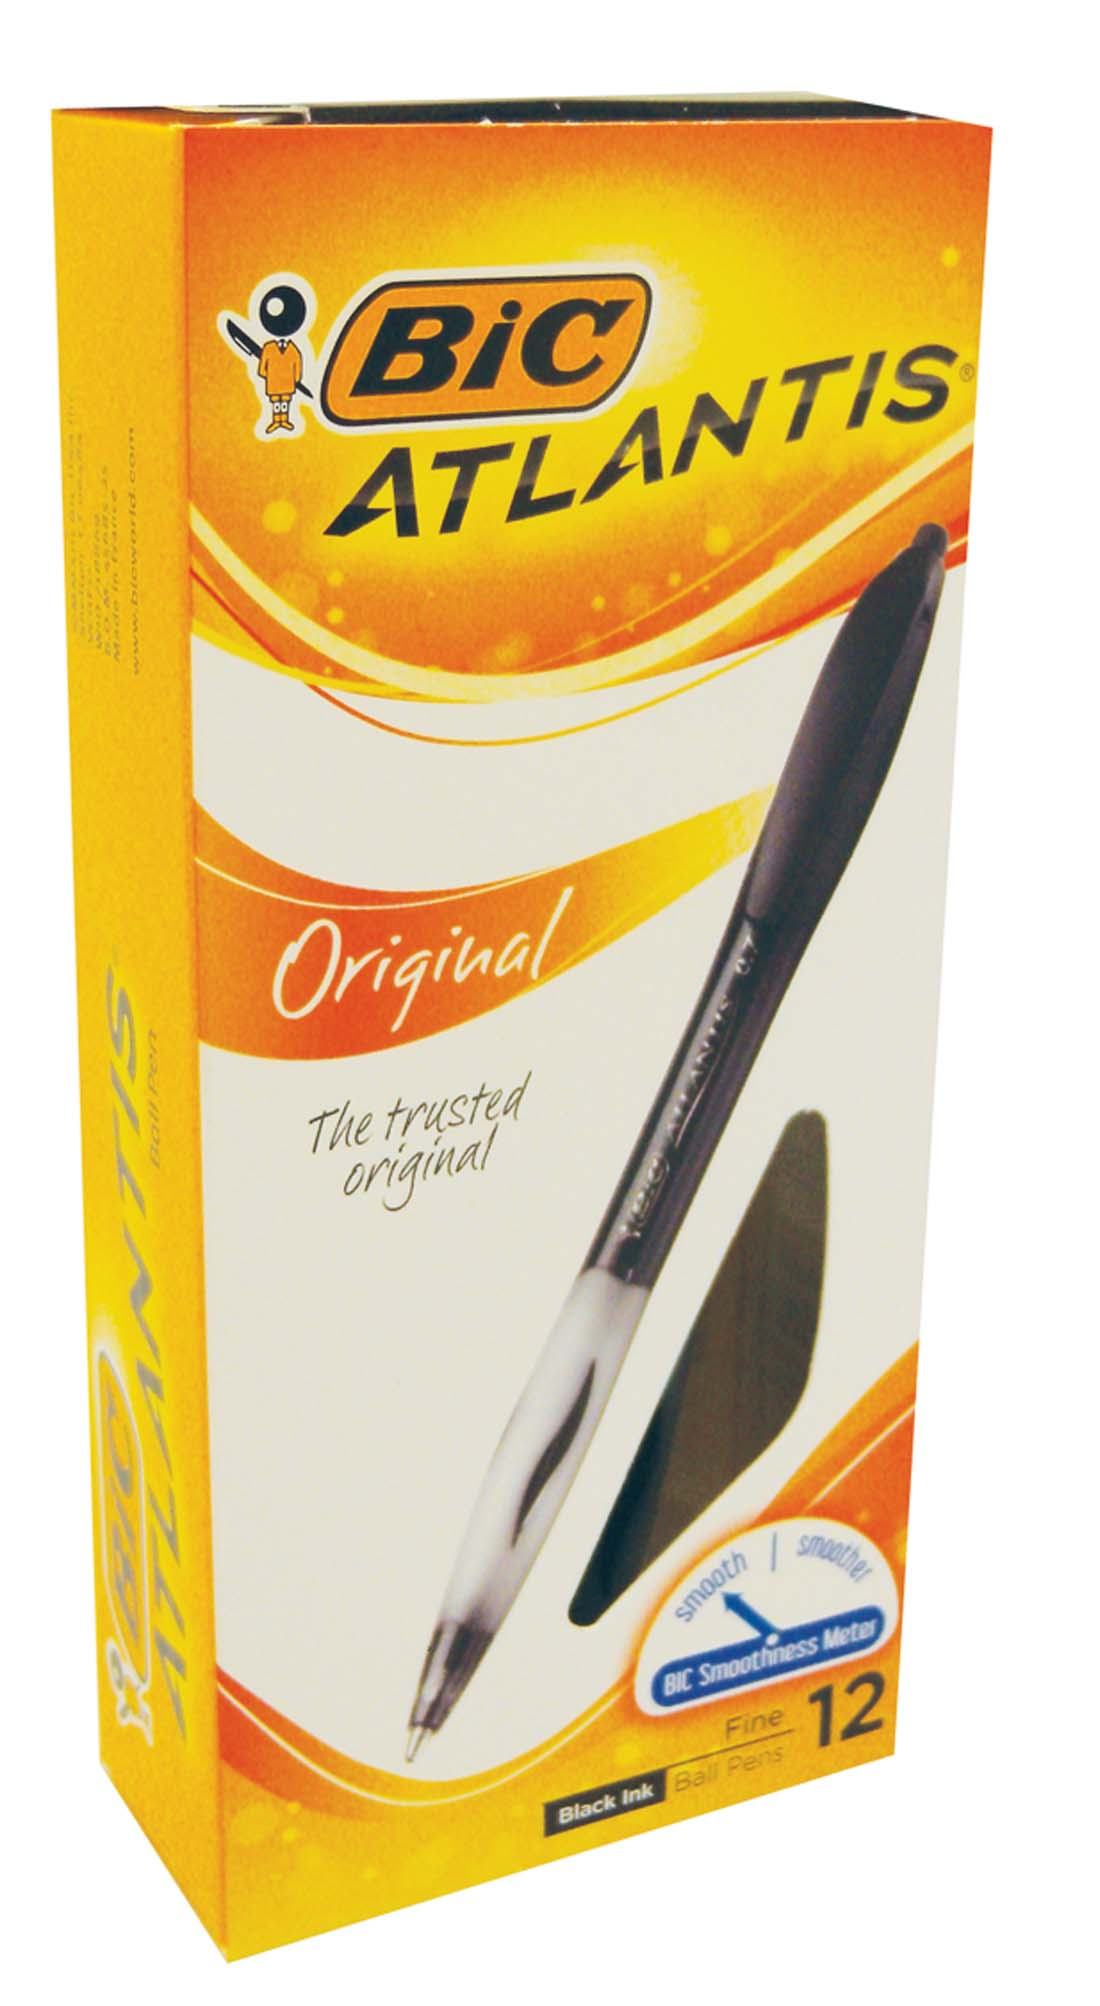 View BIC ATLANTIS BALLPOINT PENS 12 PK FINE BLACK INK